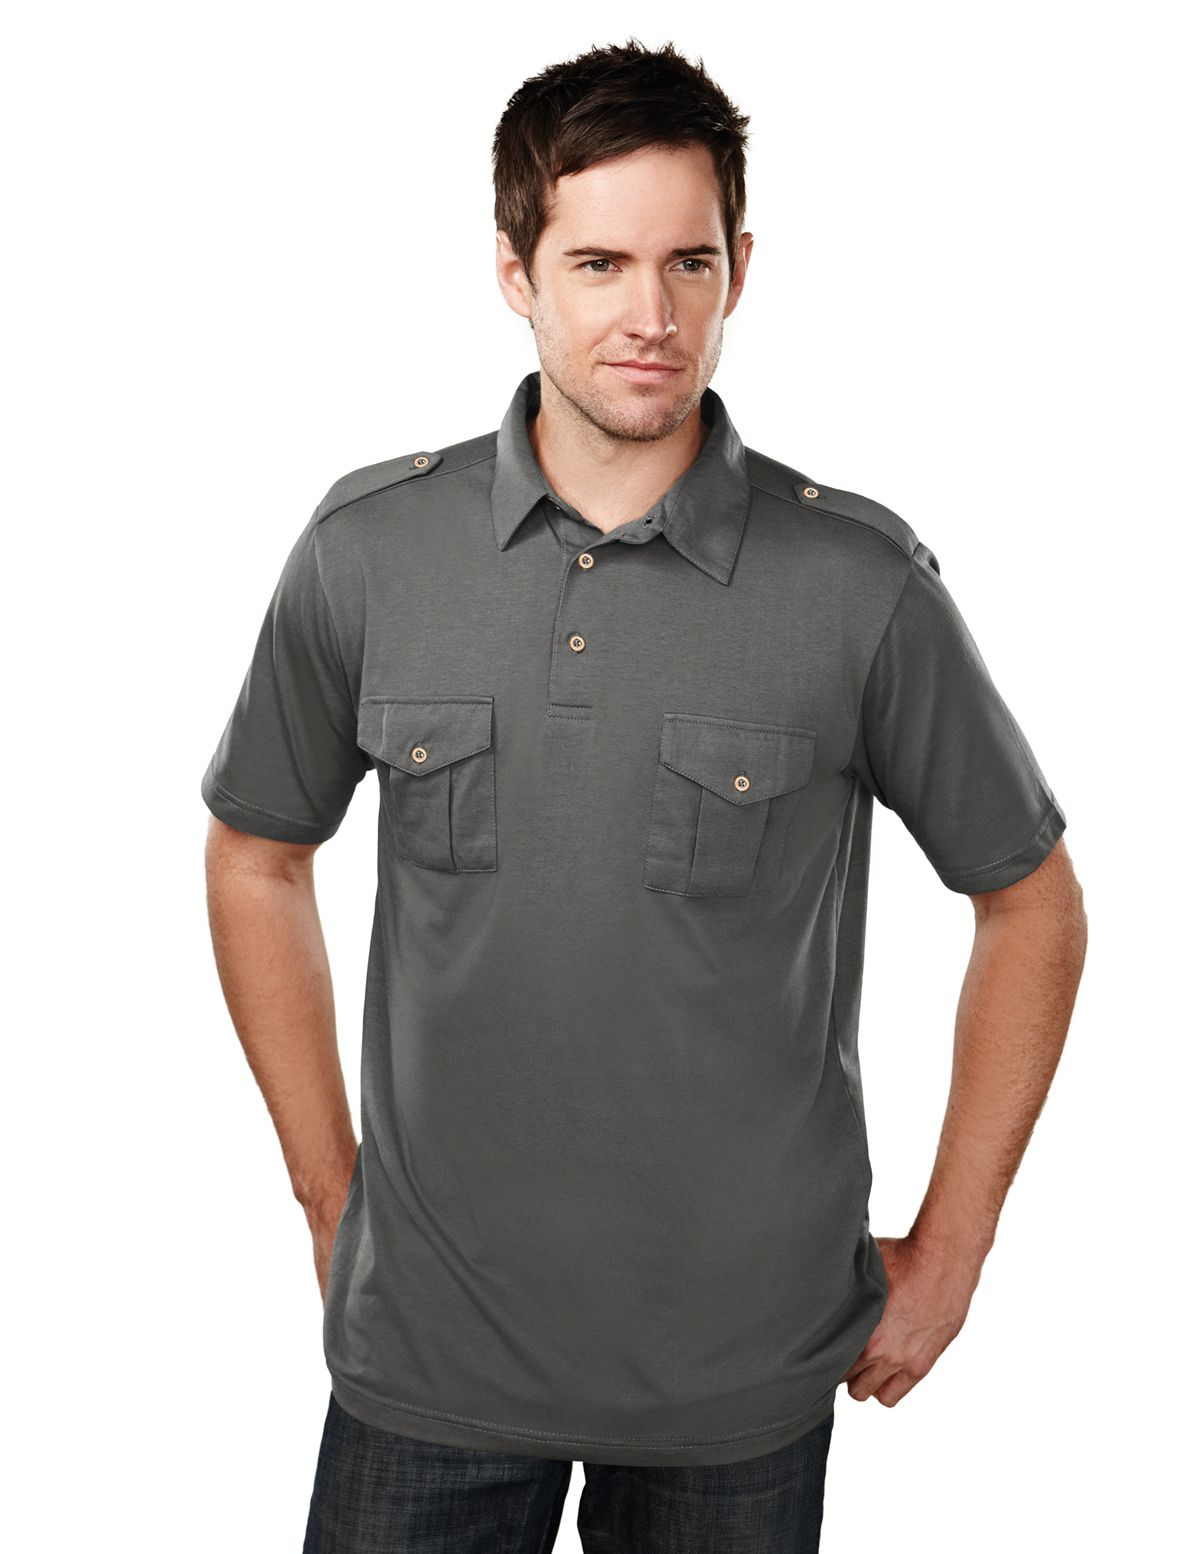 Men's Jersey Polo With Two Chest Cargo Pockets (60% Cotton/40% Polyester)  Tri mountain 187 #casual #Cargo #Jersey